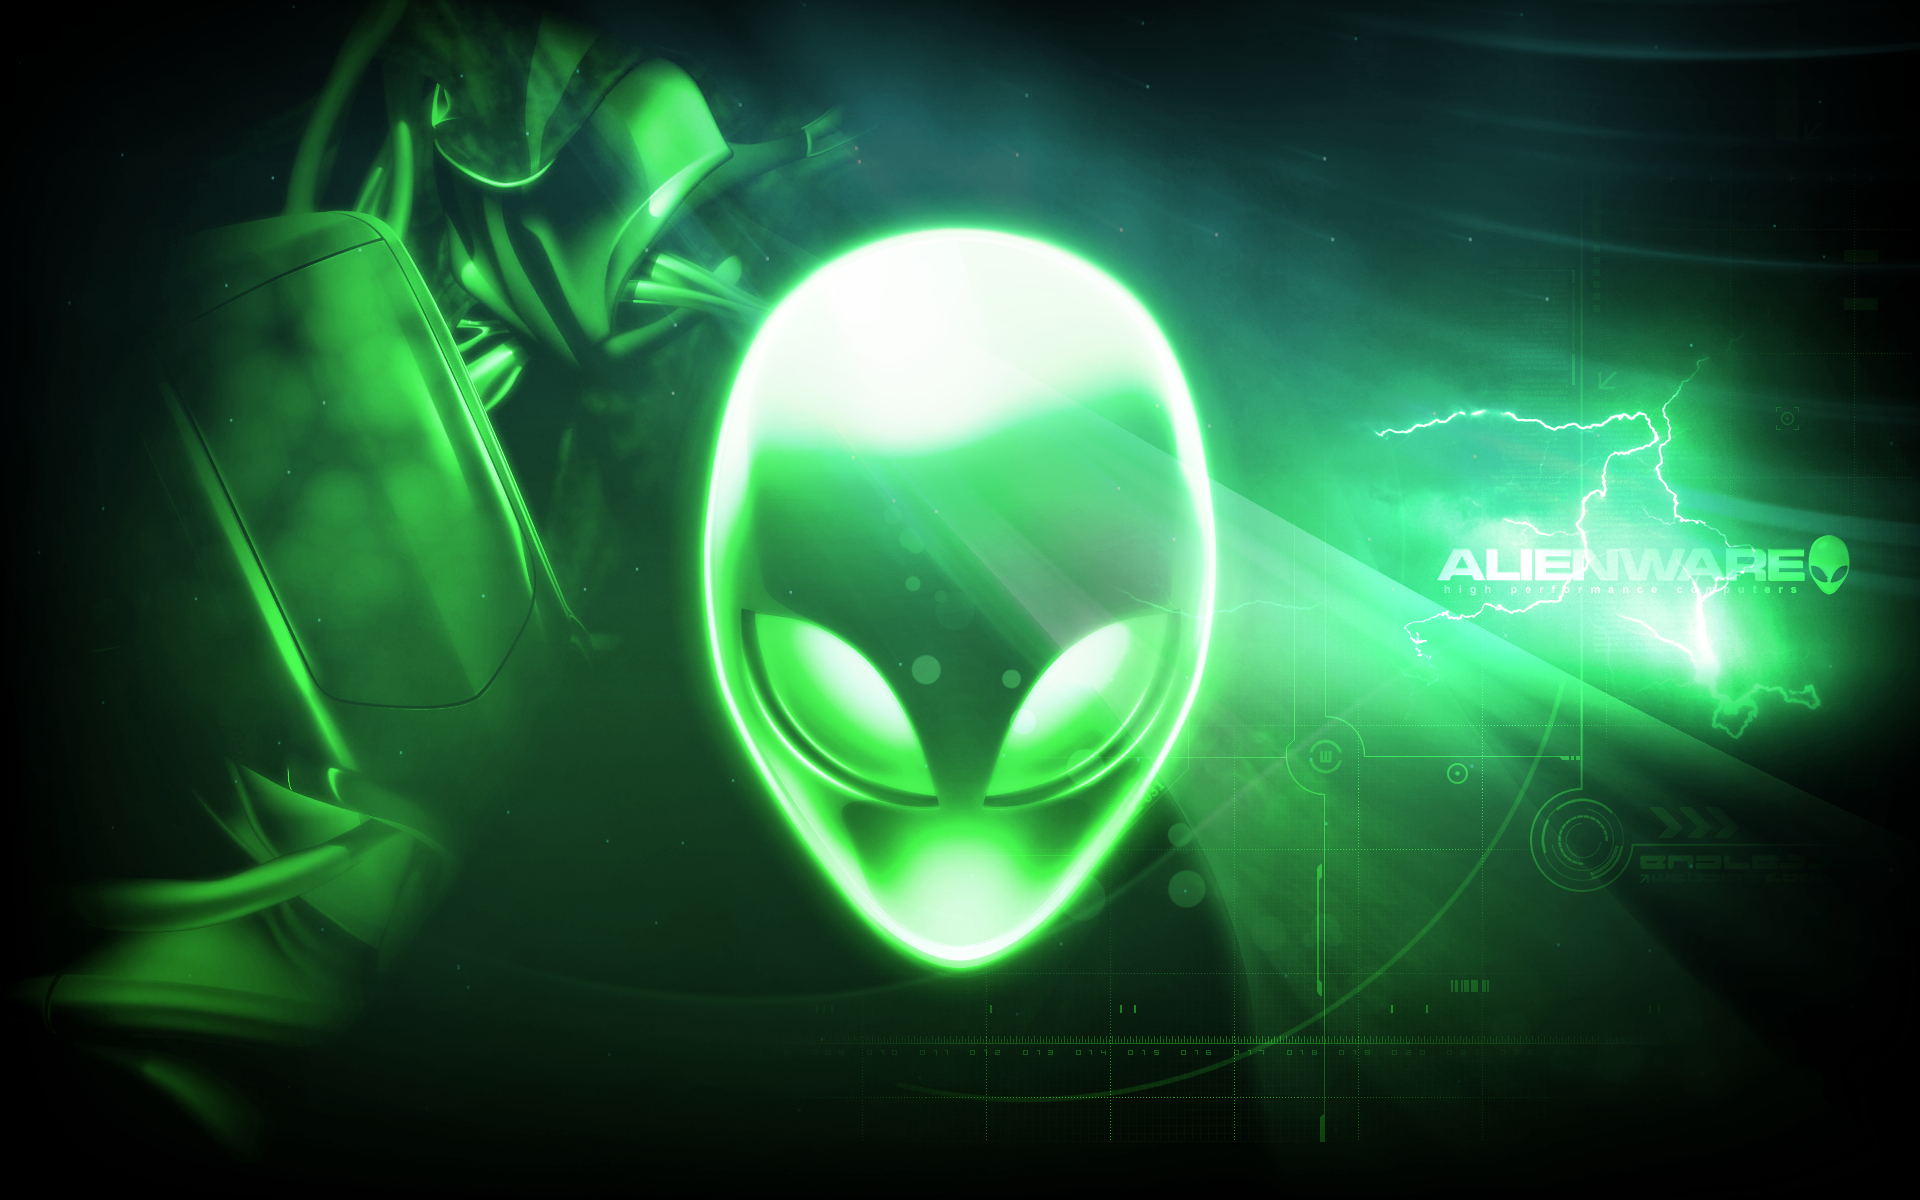 Alienware wallpapers best wallpapers for High quality wallpapers